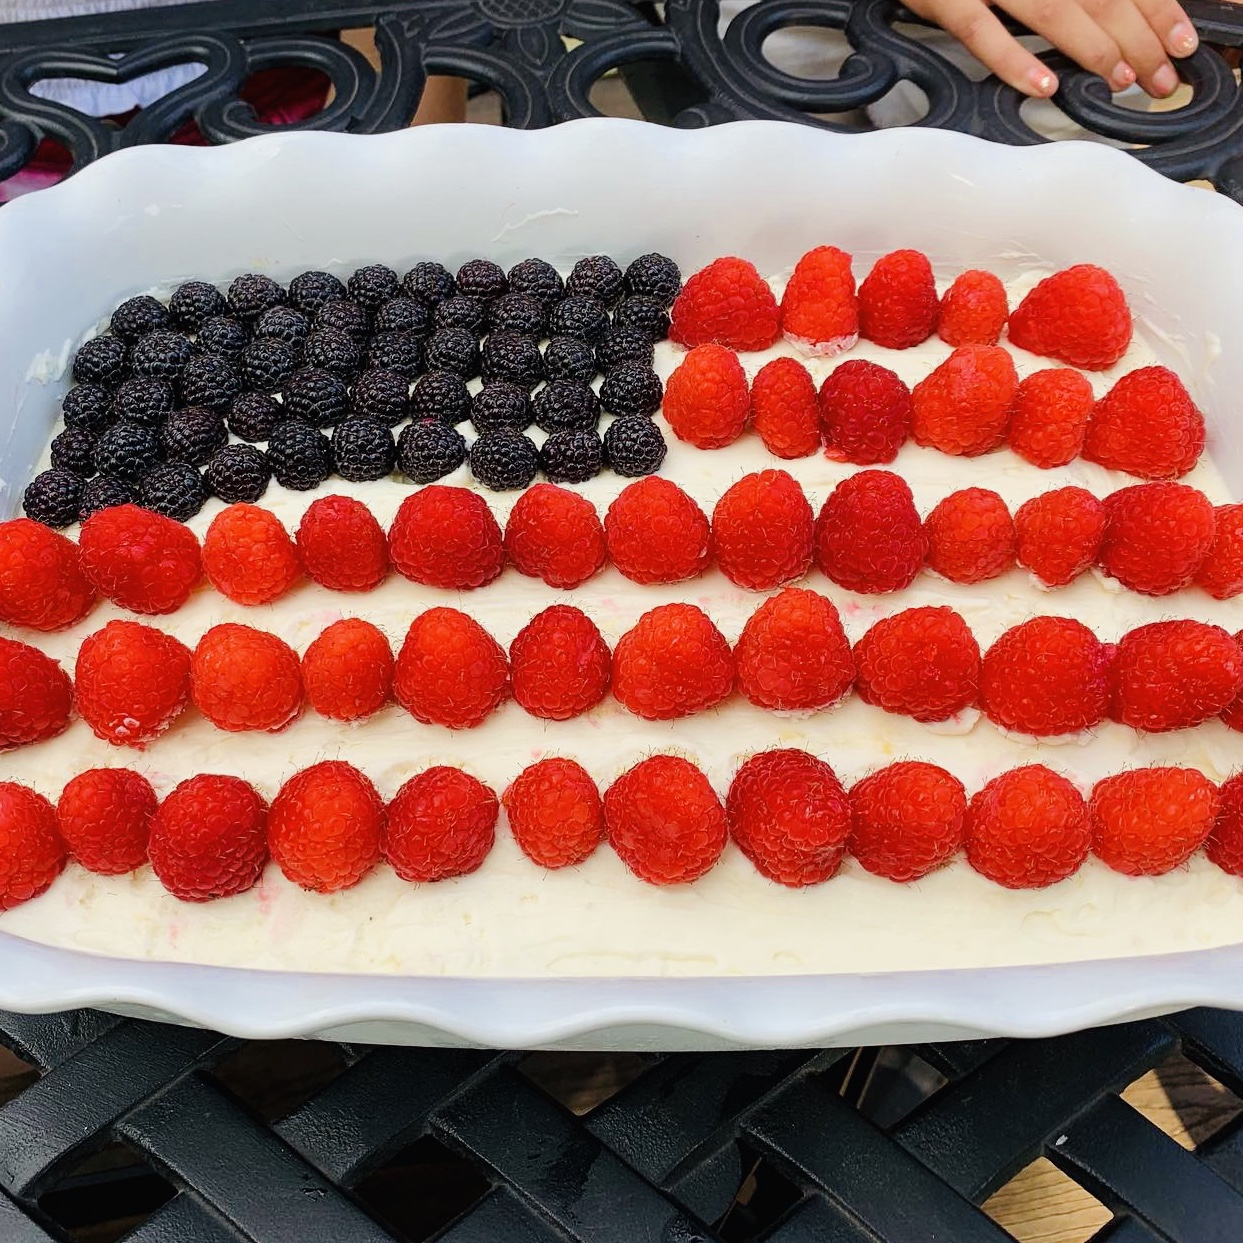 This easy Memorial Day dessert won't heat up your kitchen when you make it, and it can feed a crowd. You can use strawberries or raspberries to create the red stripes, if you wish. Tip: To make sure your flag is picture perfect (and the berry juices don't stain the frosting), slice and pack the fruit in separate containers, then top the cake after you get to your picnic perfect spot.